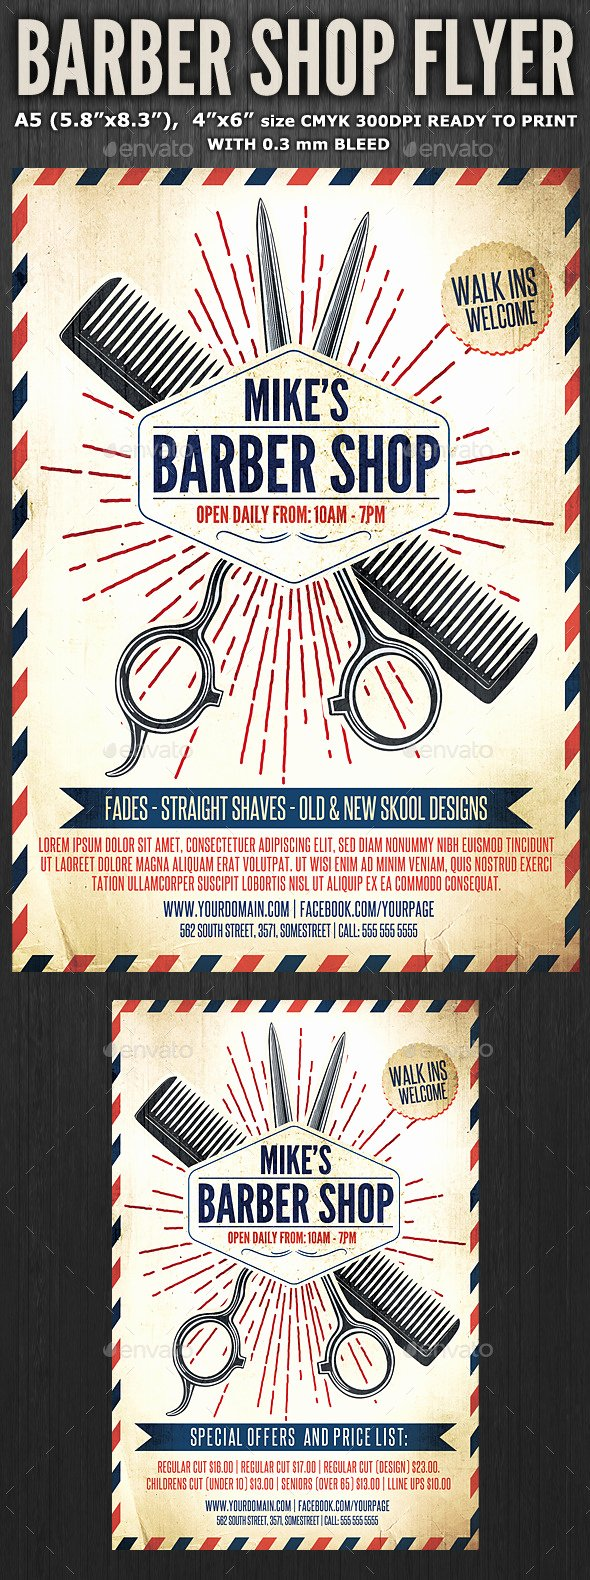 Barber Shop Flyer Template 3 by Hotpin